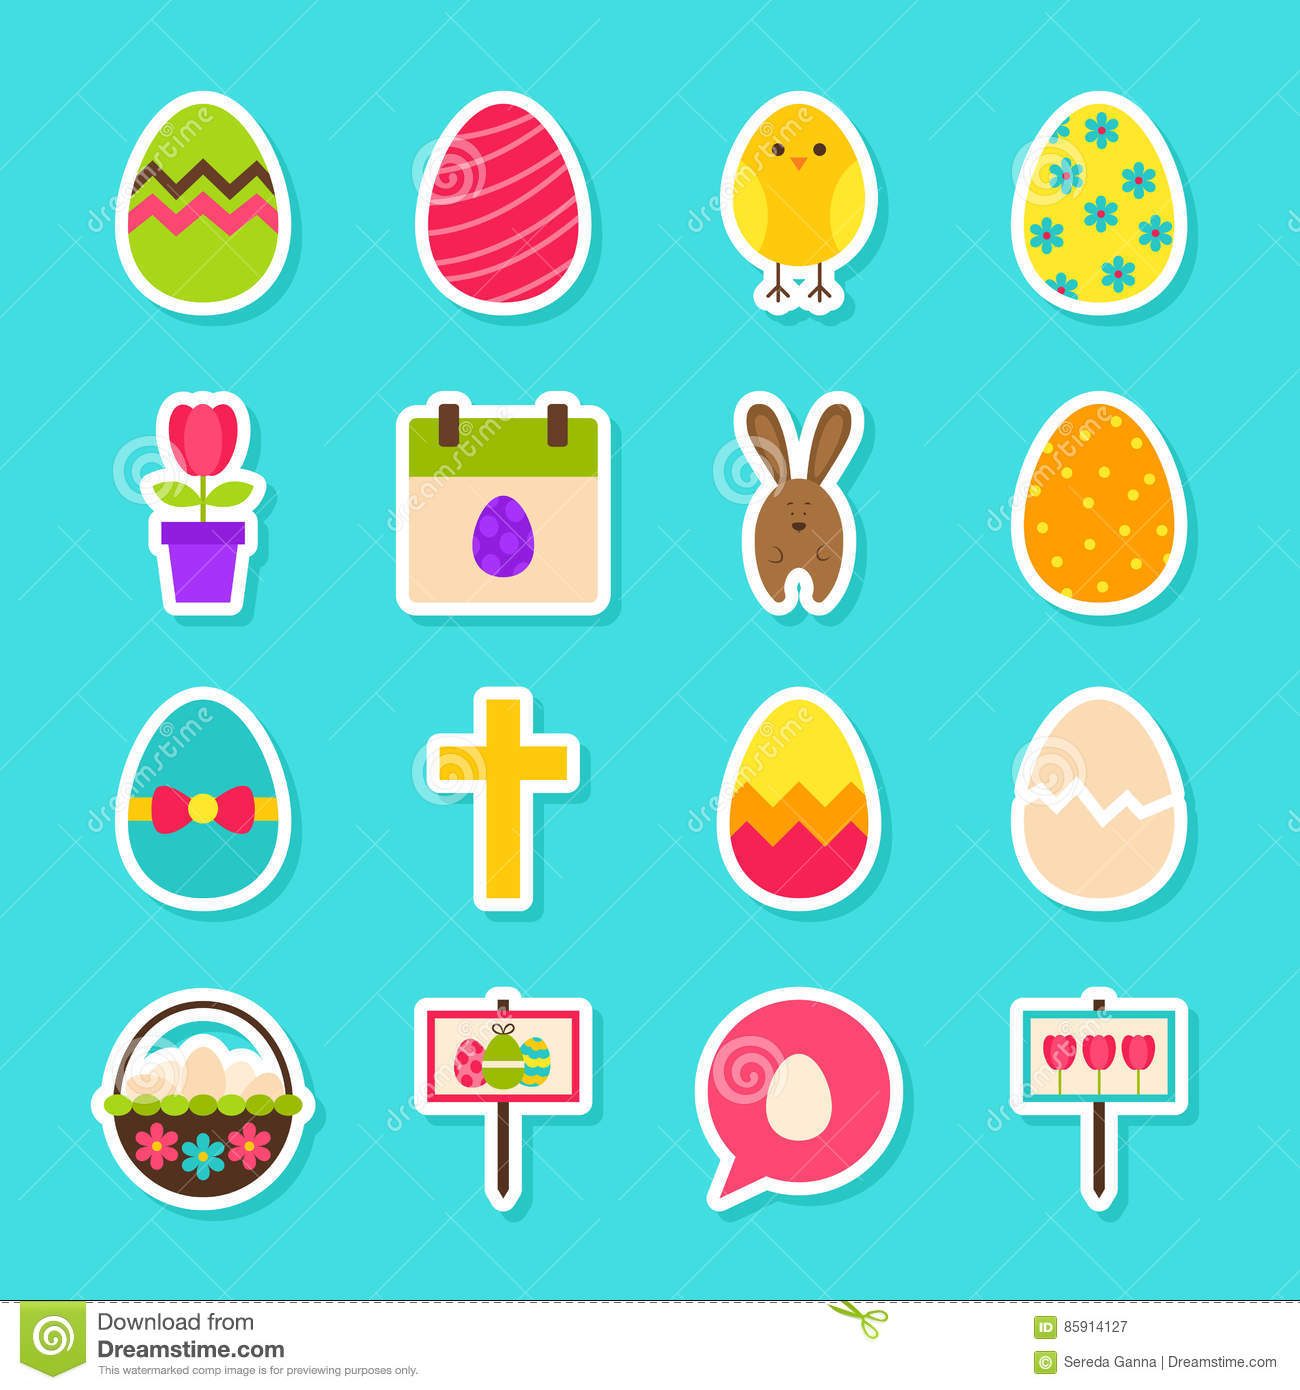 Happy Easter Stickers Stock Vector - Image: 85914127